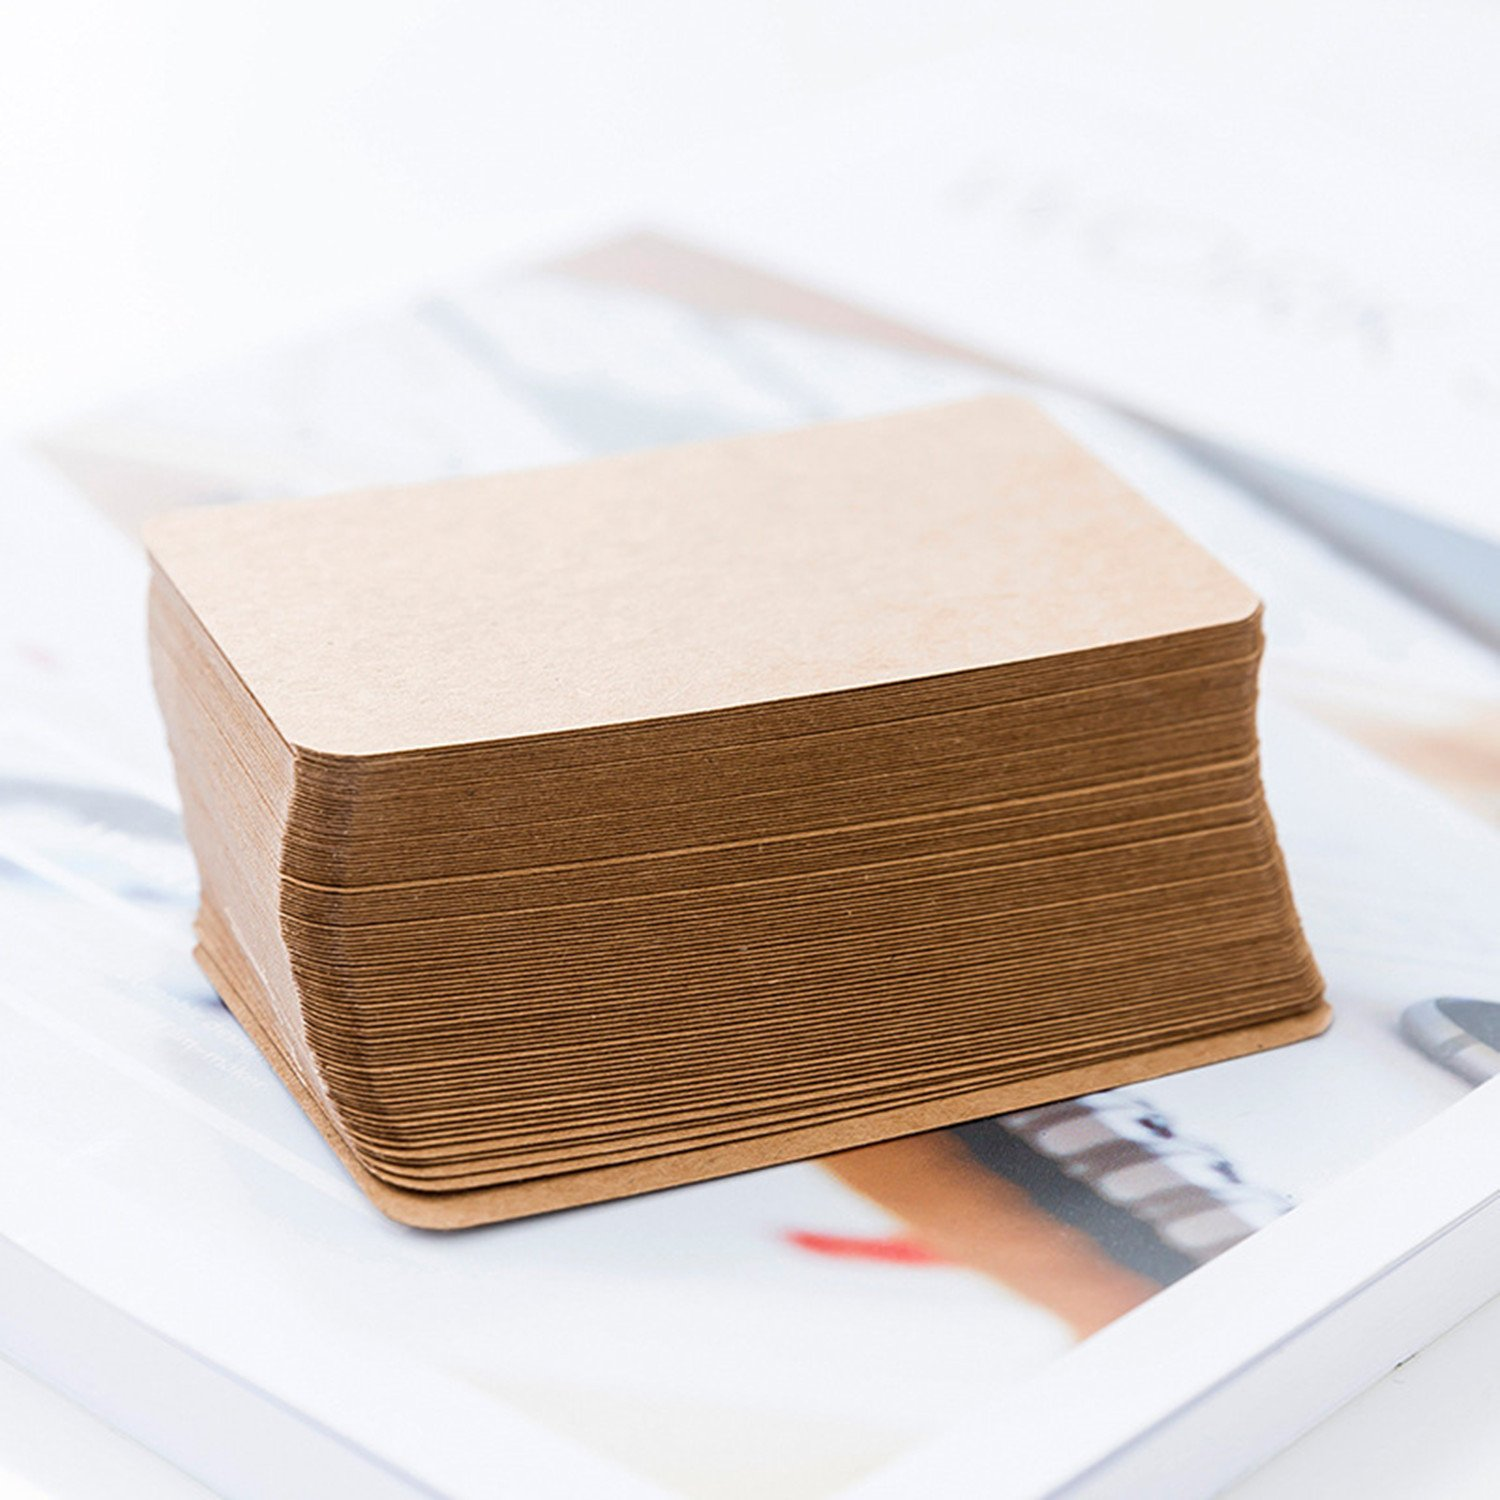 Syndecho 200pcs Blank Kraft Paper Business Cards Word Card Message Card DIY Gift Card 8.5 * 5cm (White)